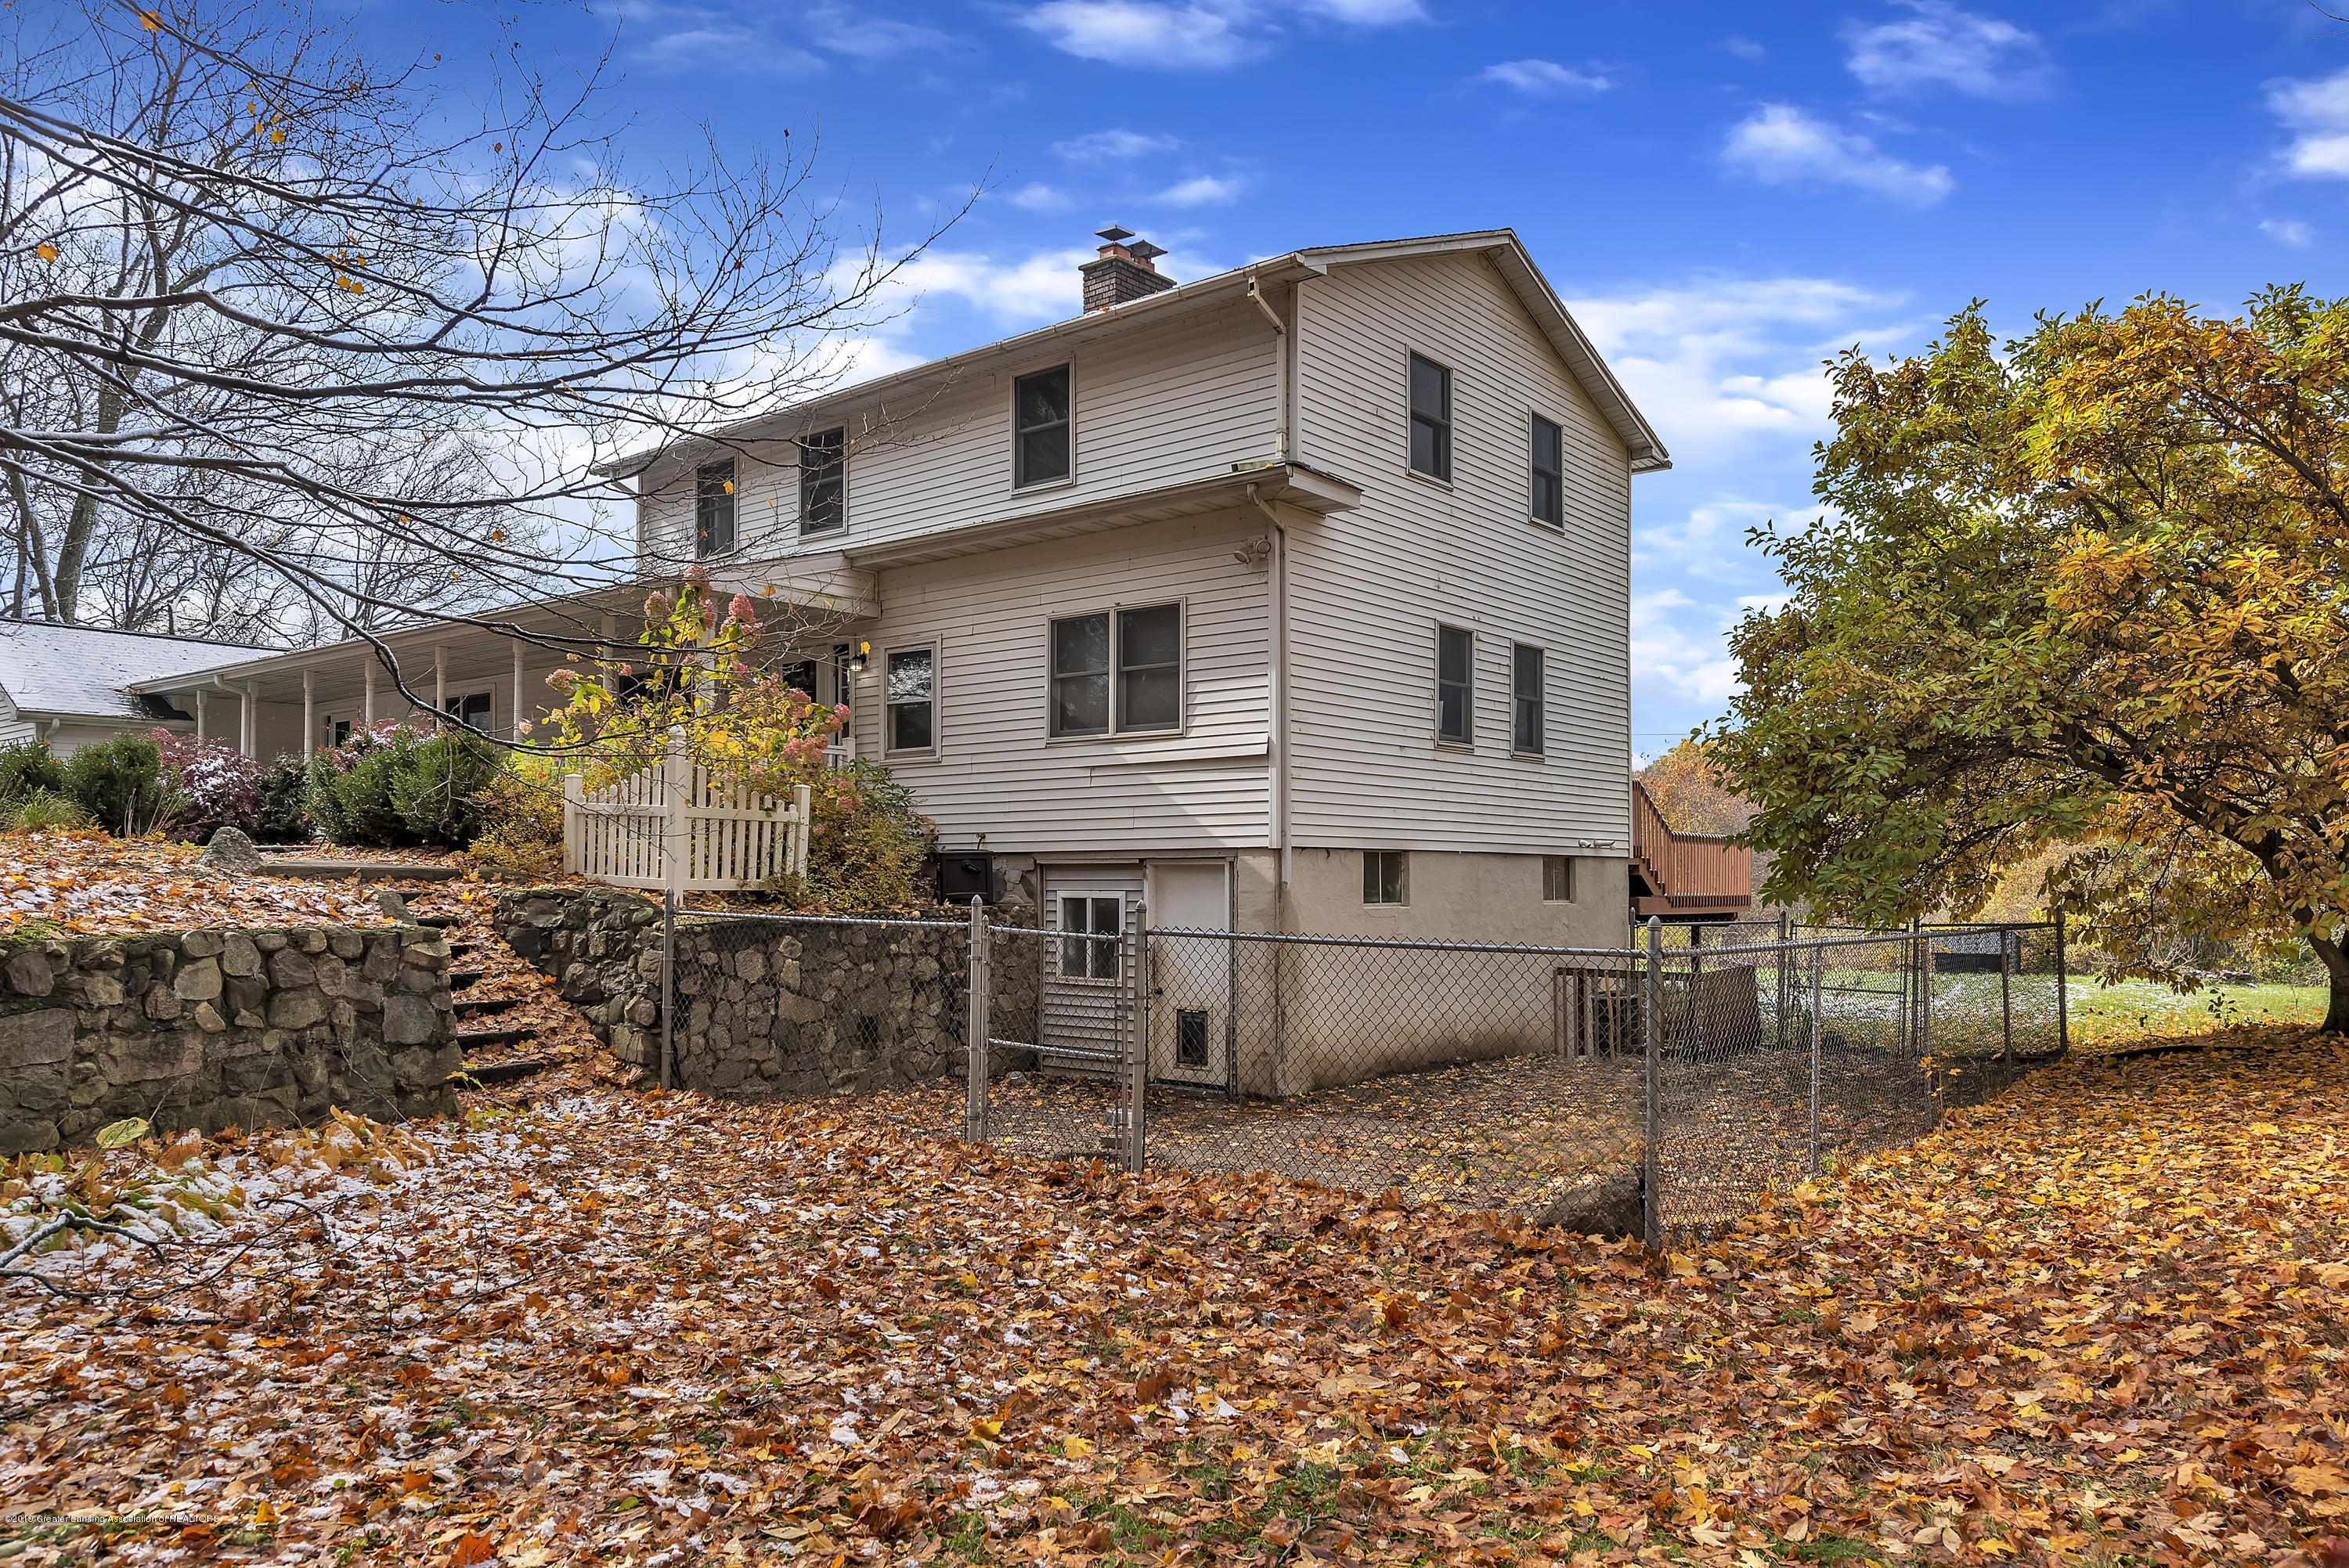 8700 Abbey Rd - 8700-Abbey-Rd-WindowStill-Real-Estate-Ph - 34